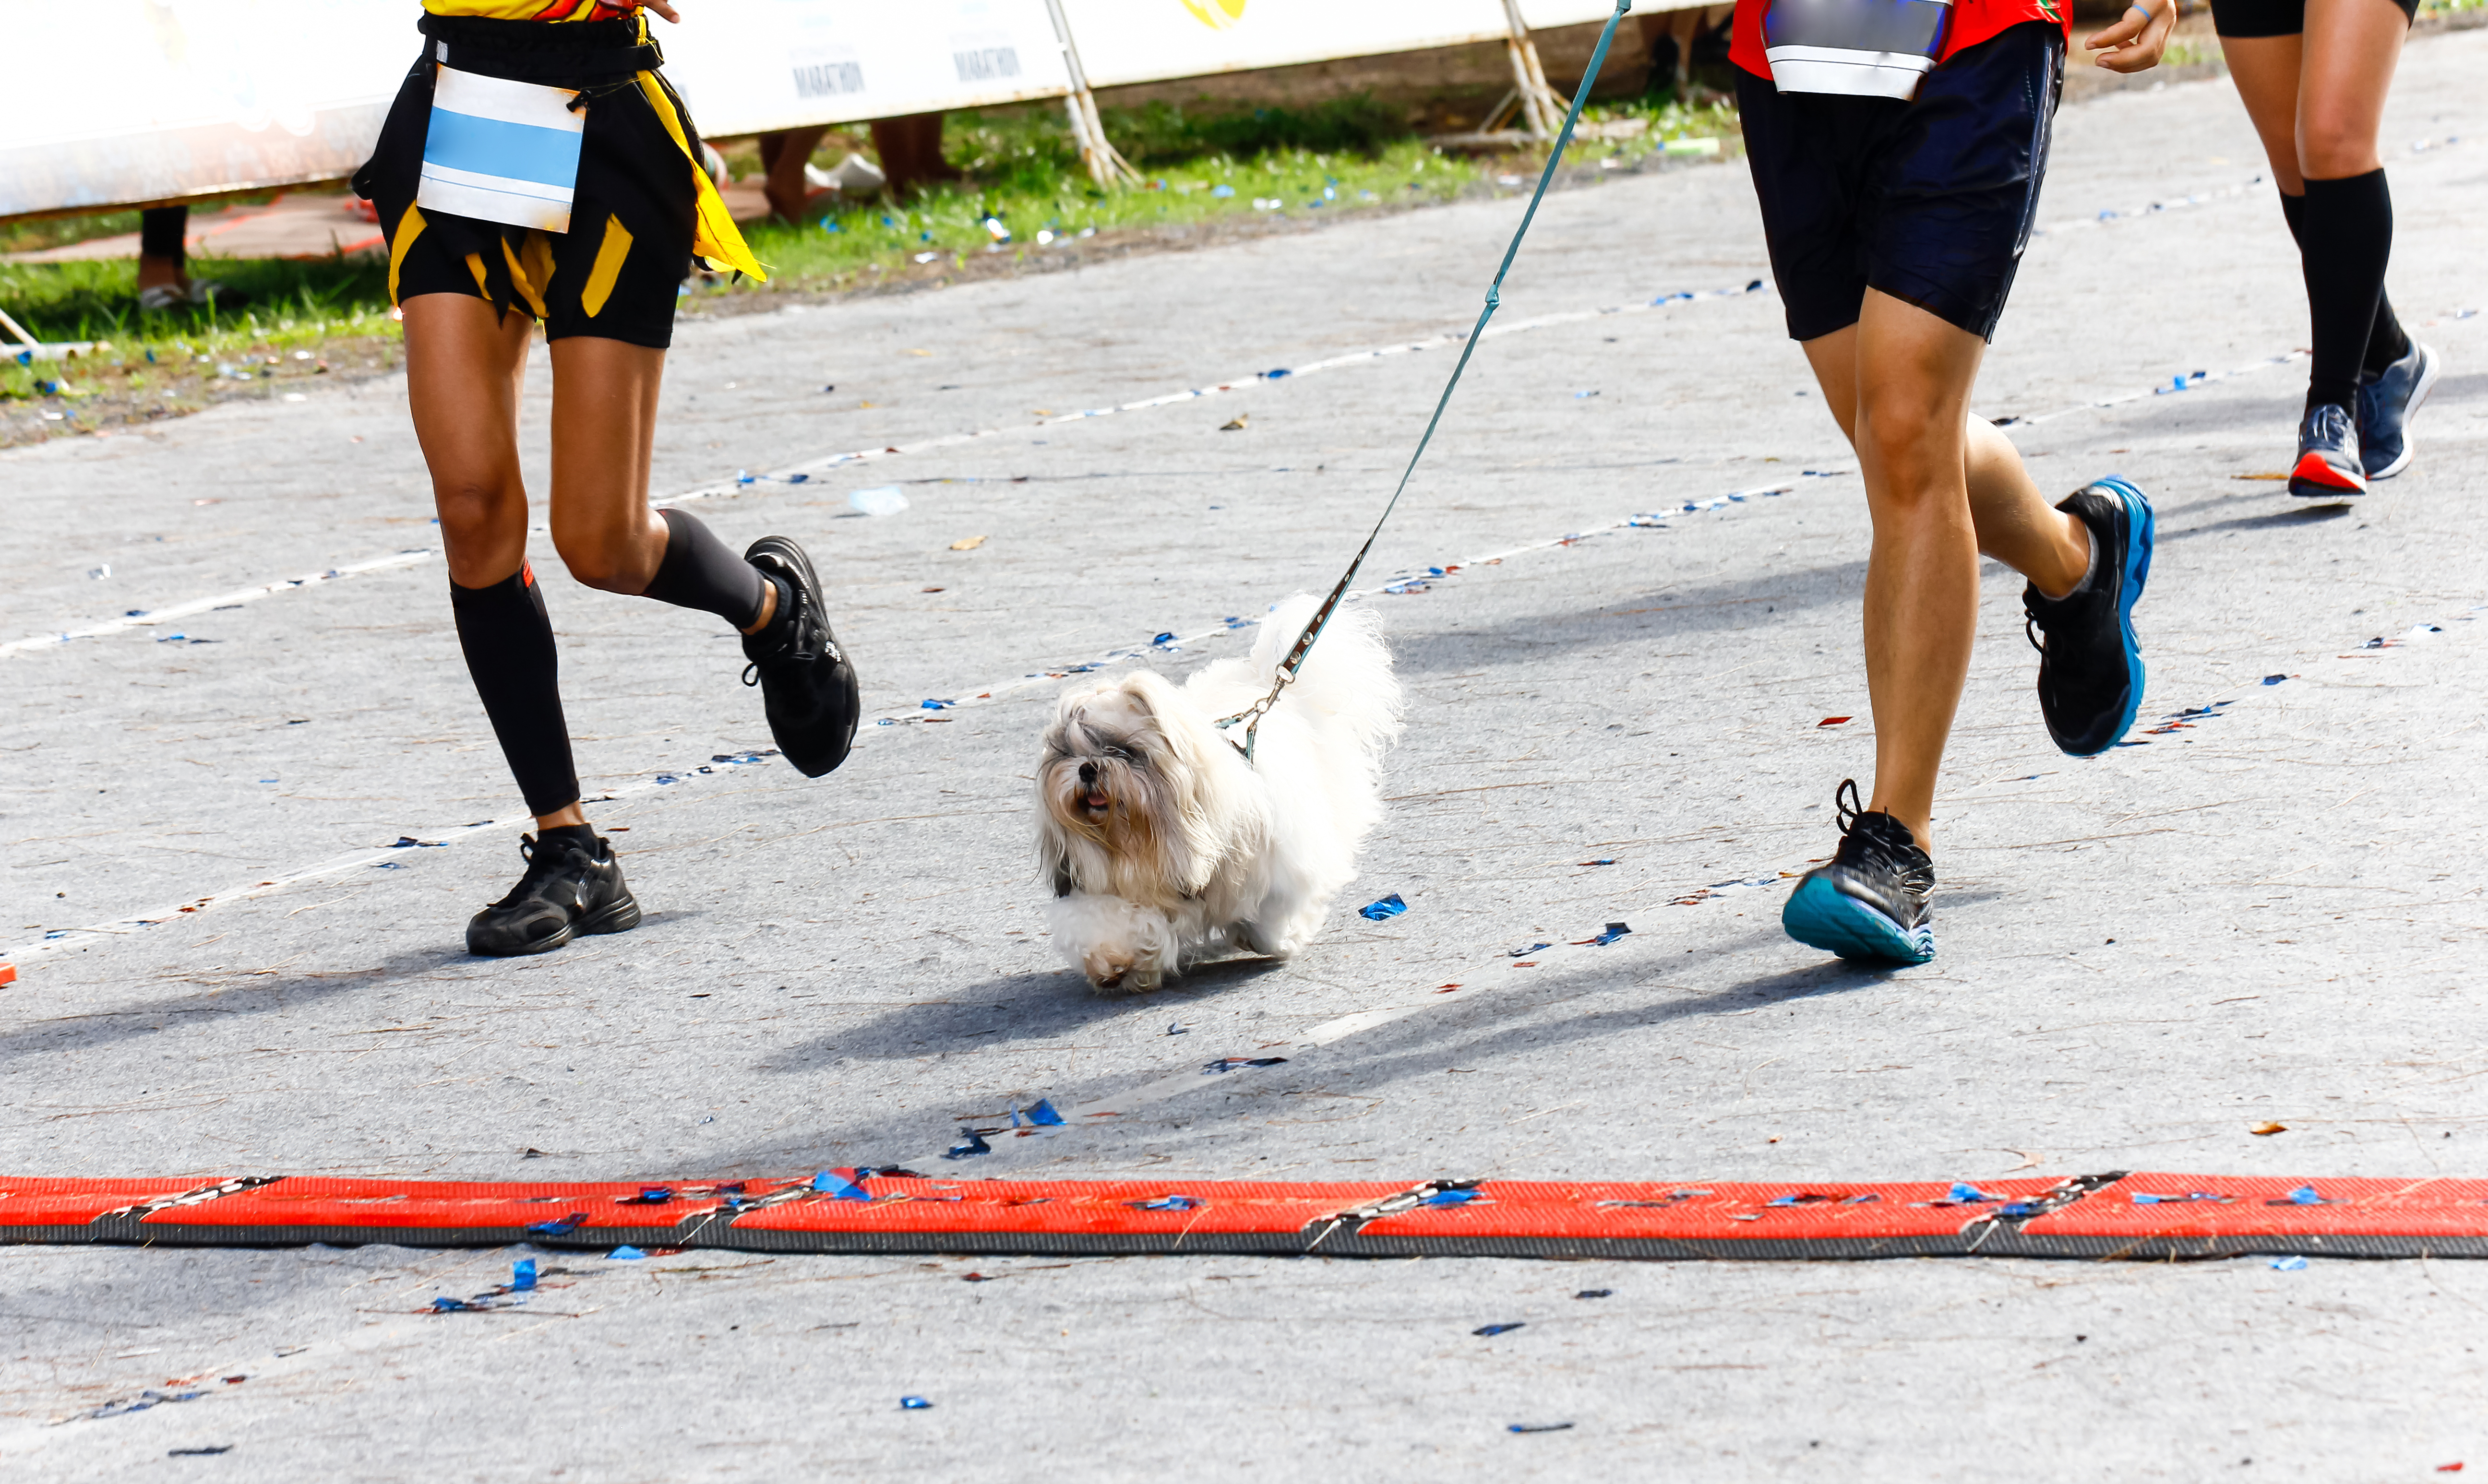 Legs of three runners on street. One has a small white fluffy dog on a leash running in front of them.